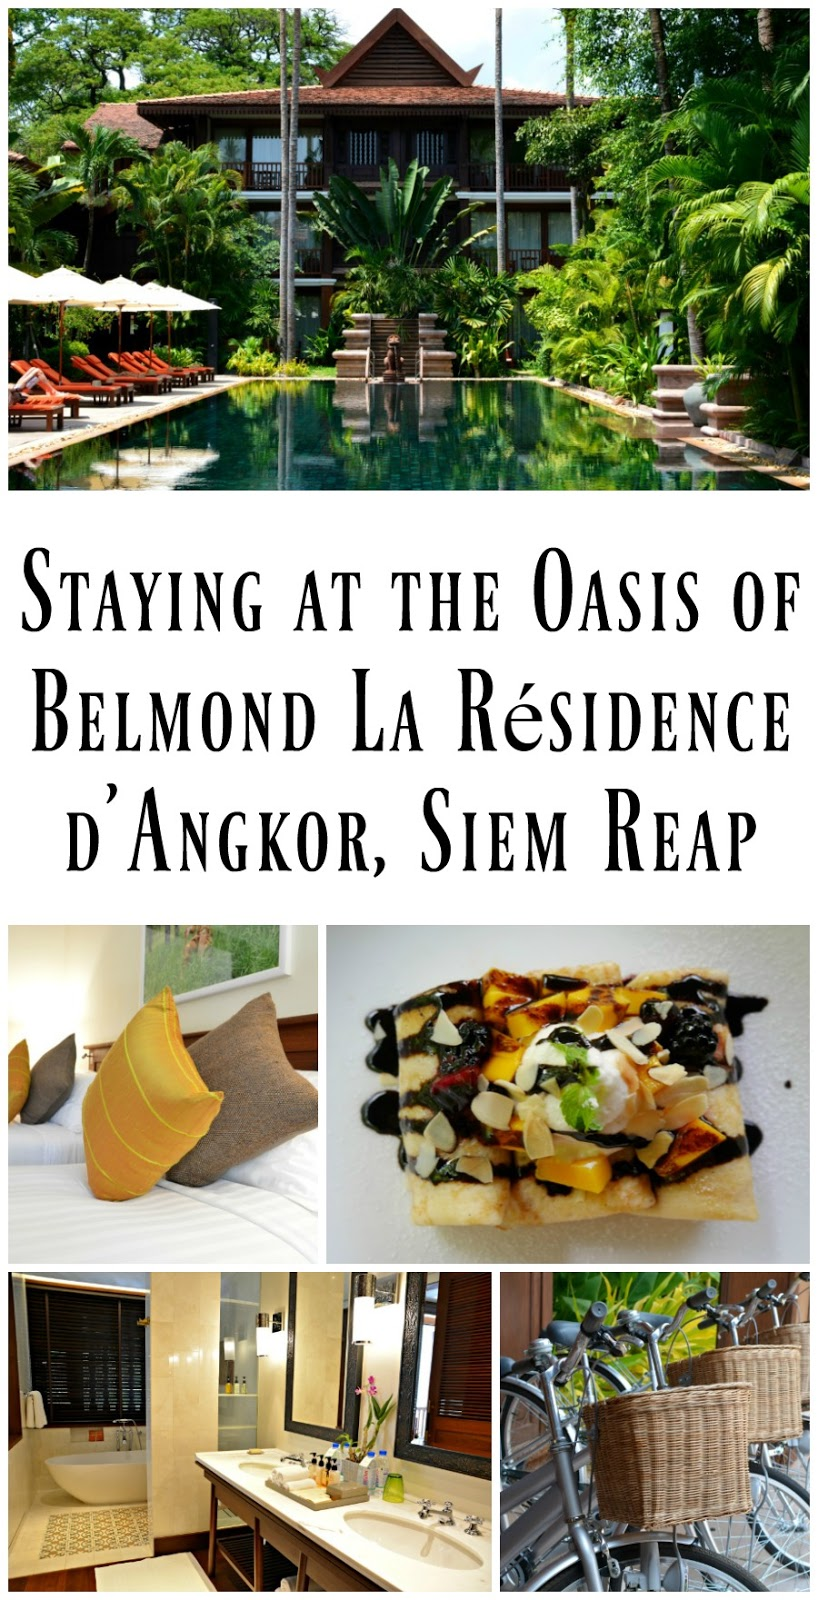 Pin For Later: A relaxing stay at the stunning oasis, Belmond La Résidence d'Angkor in Siem Reap, Cambodia!